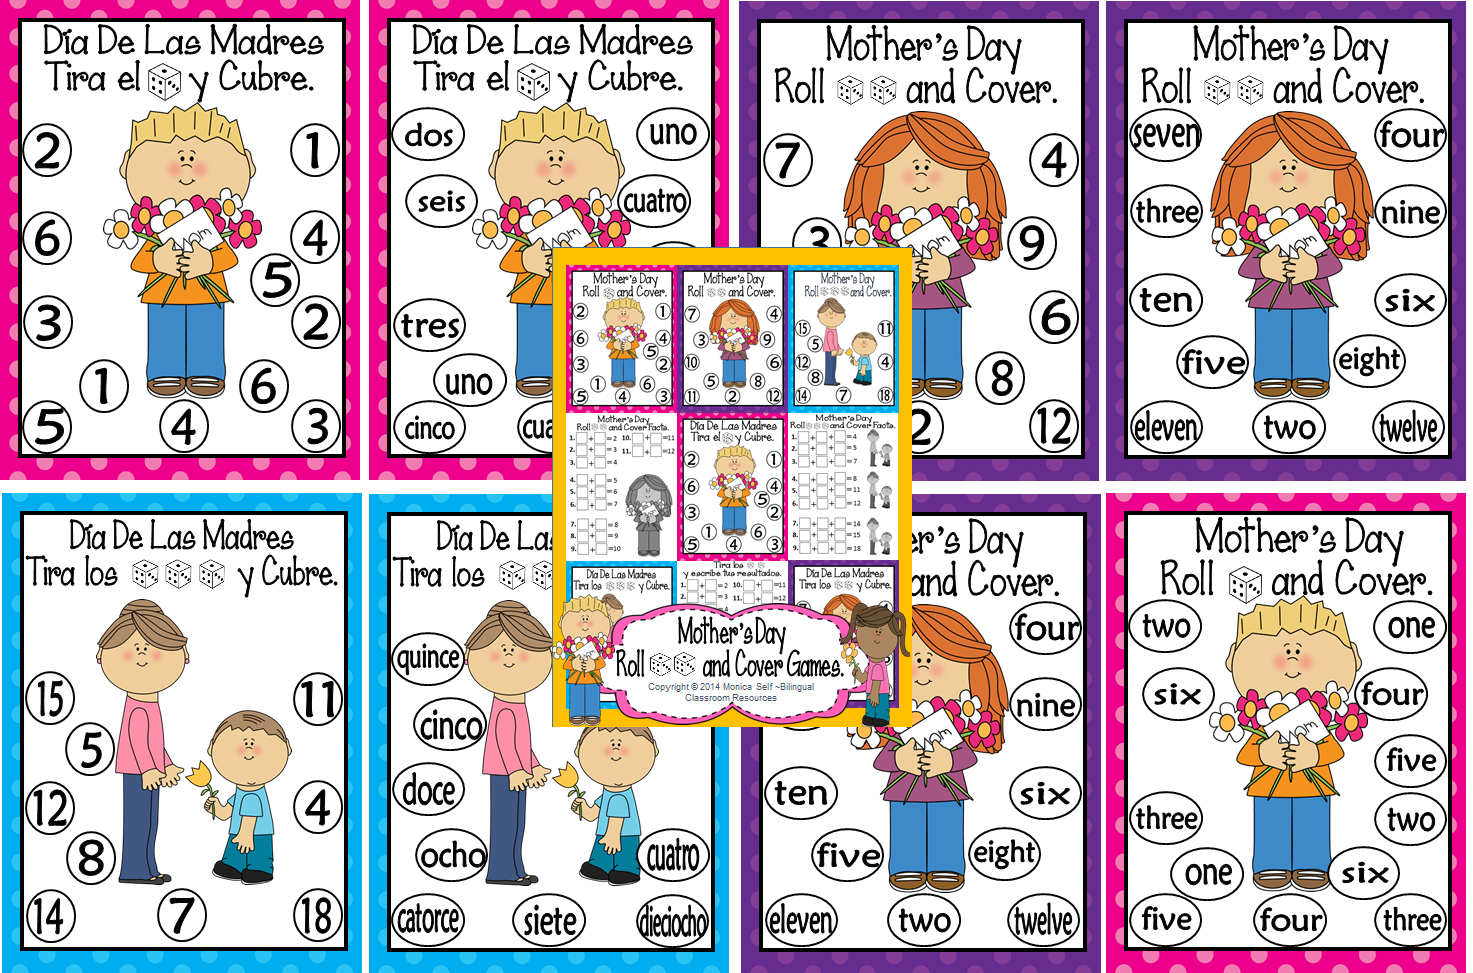 http://www.teacherspayteachers.com/Product/Mothers-Day-Roll-and-Cover-Games-1180133